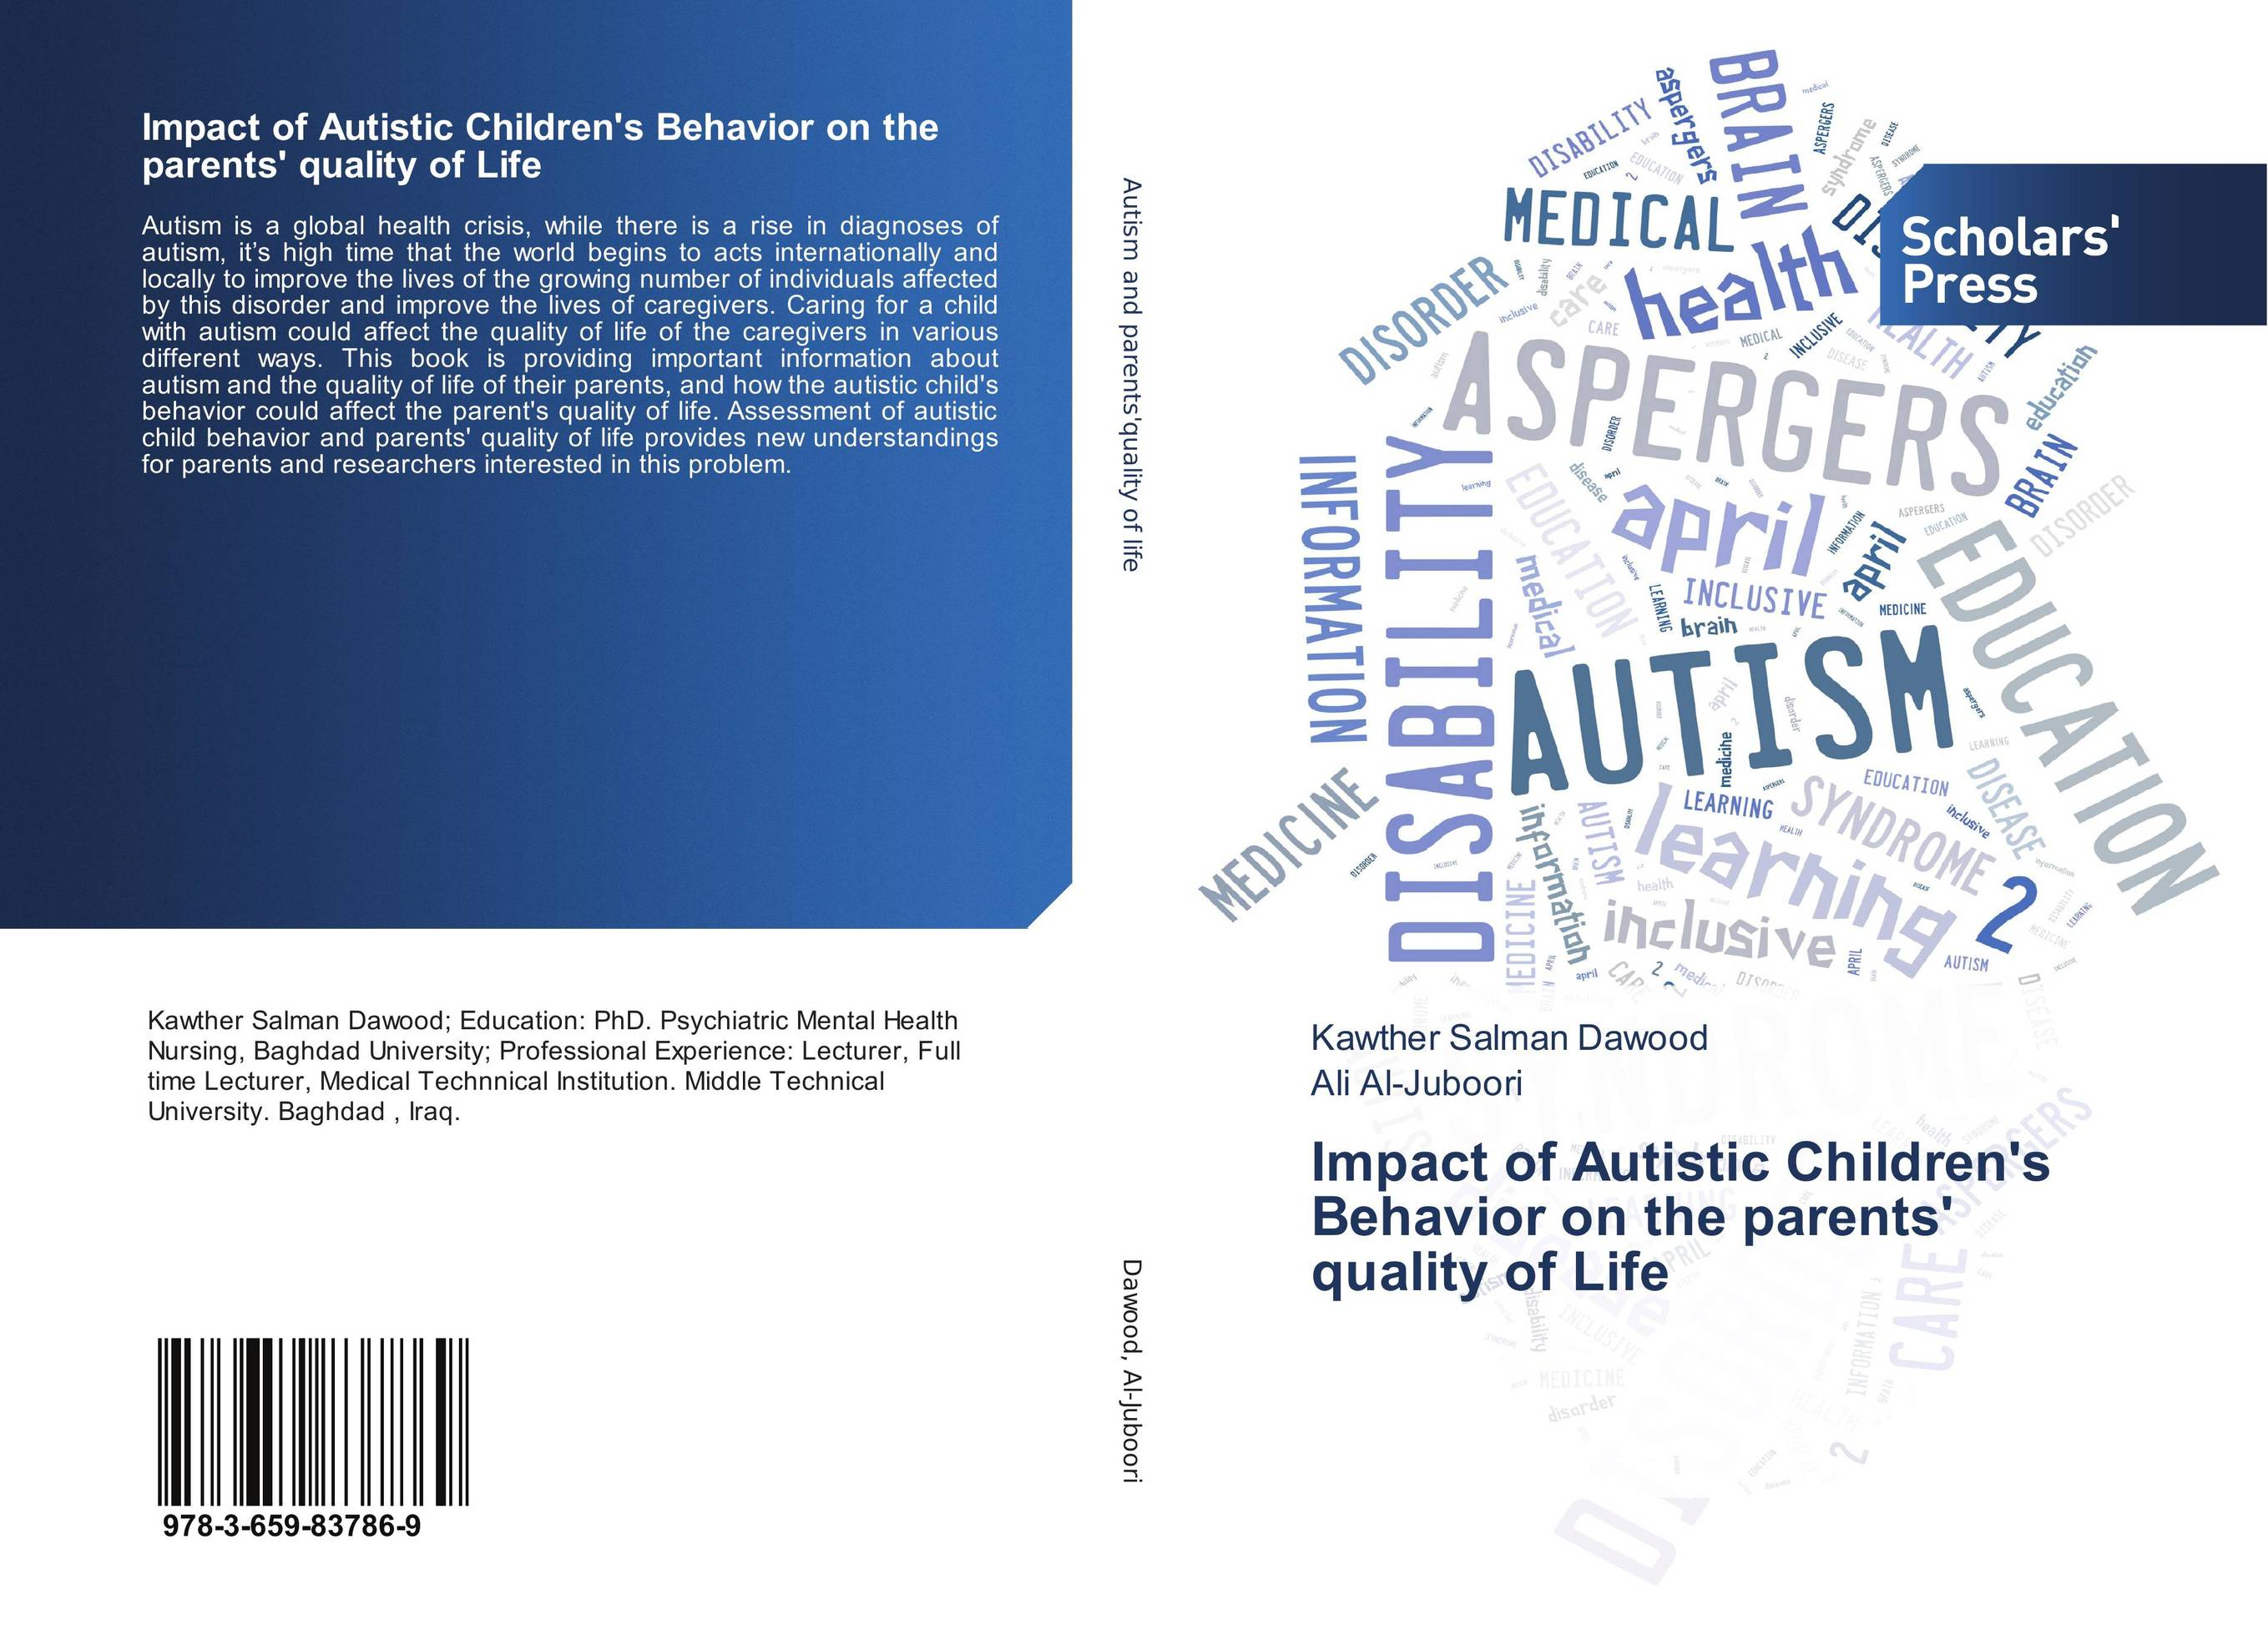 Impact of Autistic Children's Behavior on the parents' quality of Life reasoning behaviour across the autism and psychosis continuums